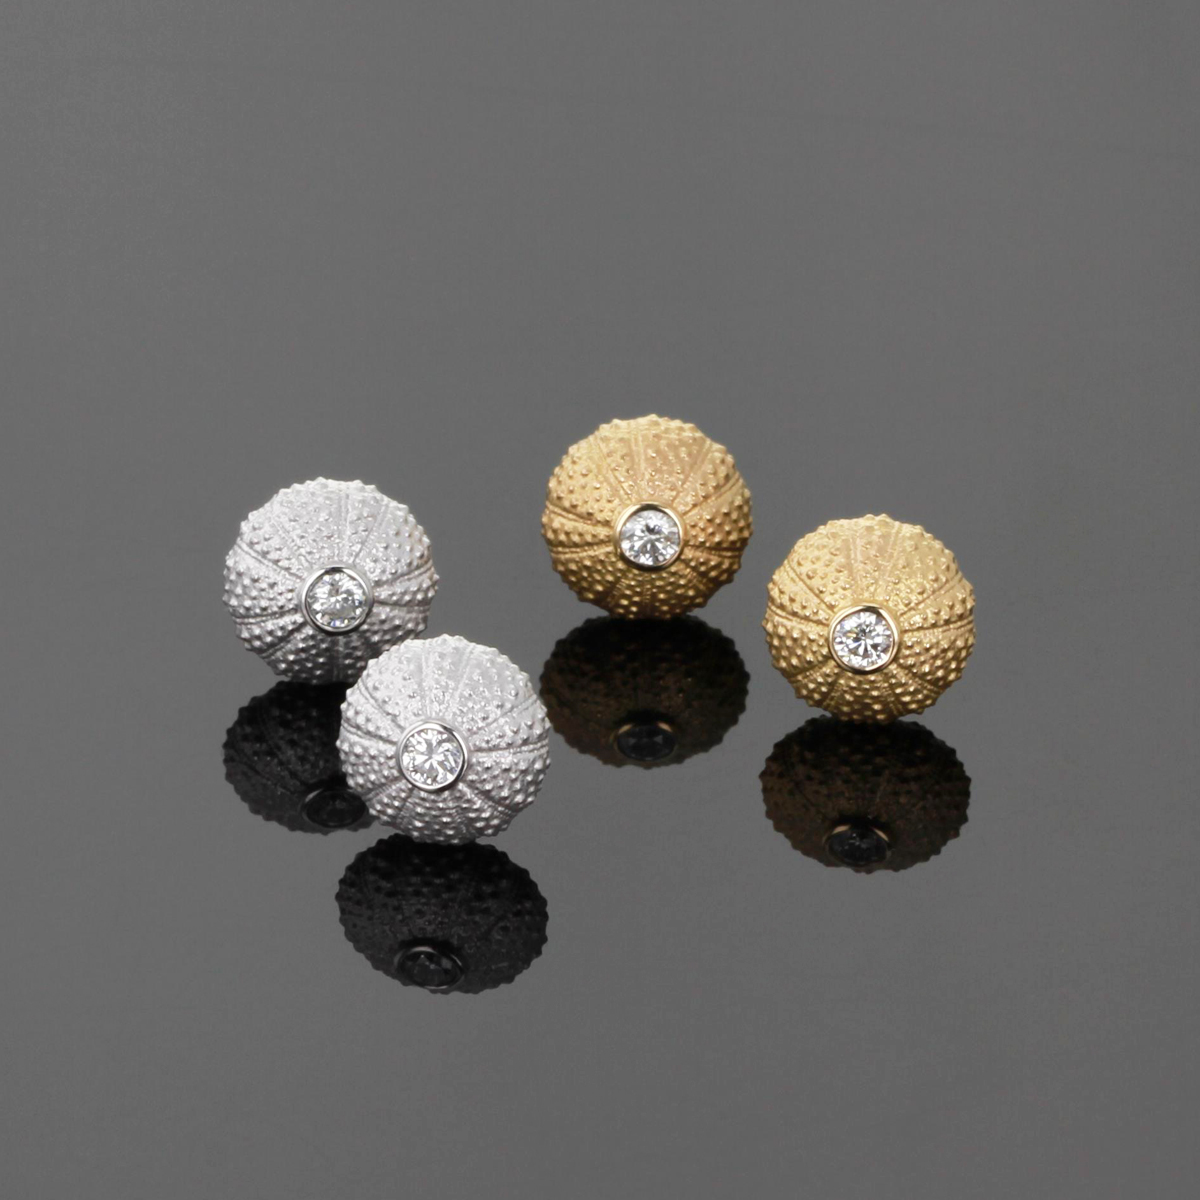 Sea urchin earrings in gold